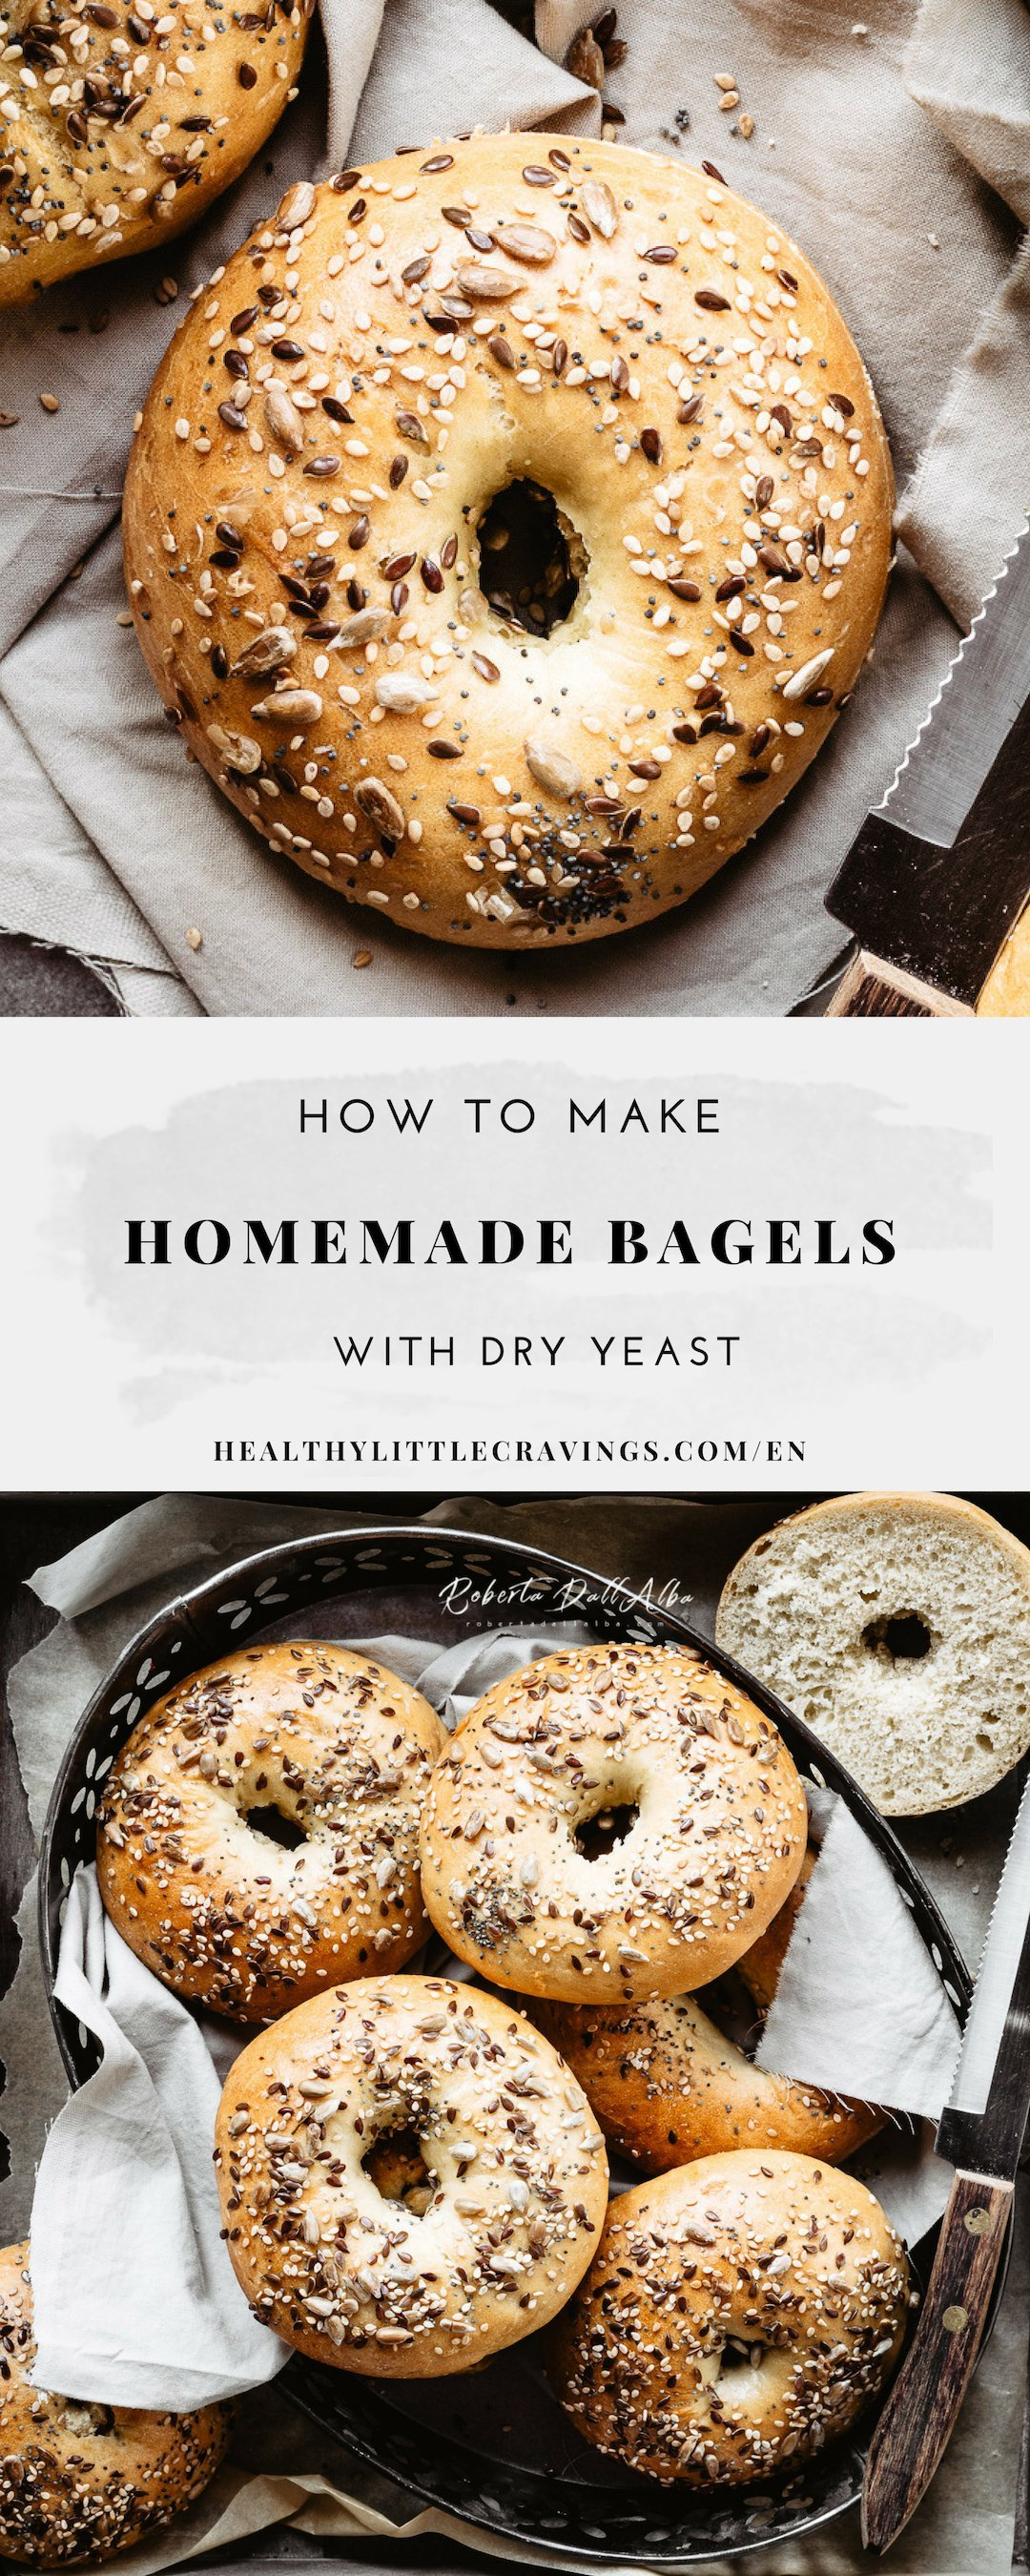 Homemade bagels to pin on Pinterest